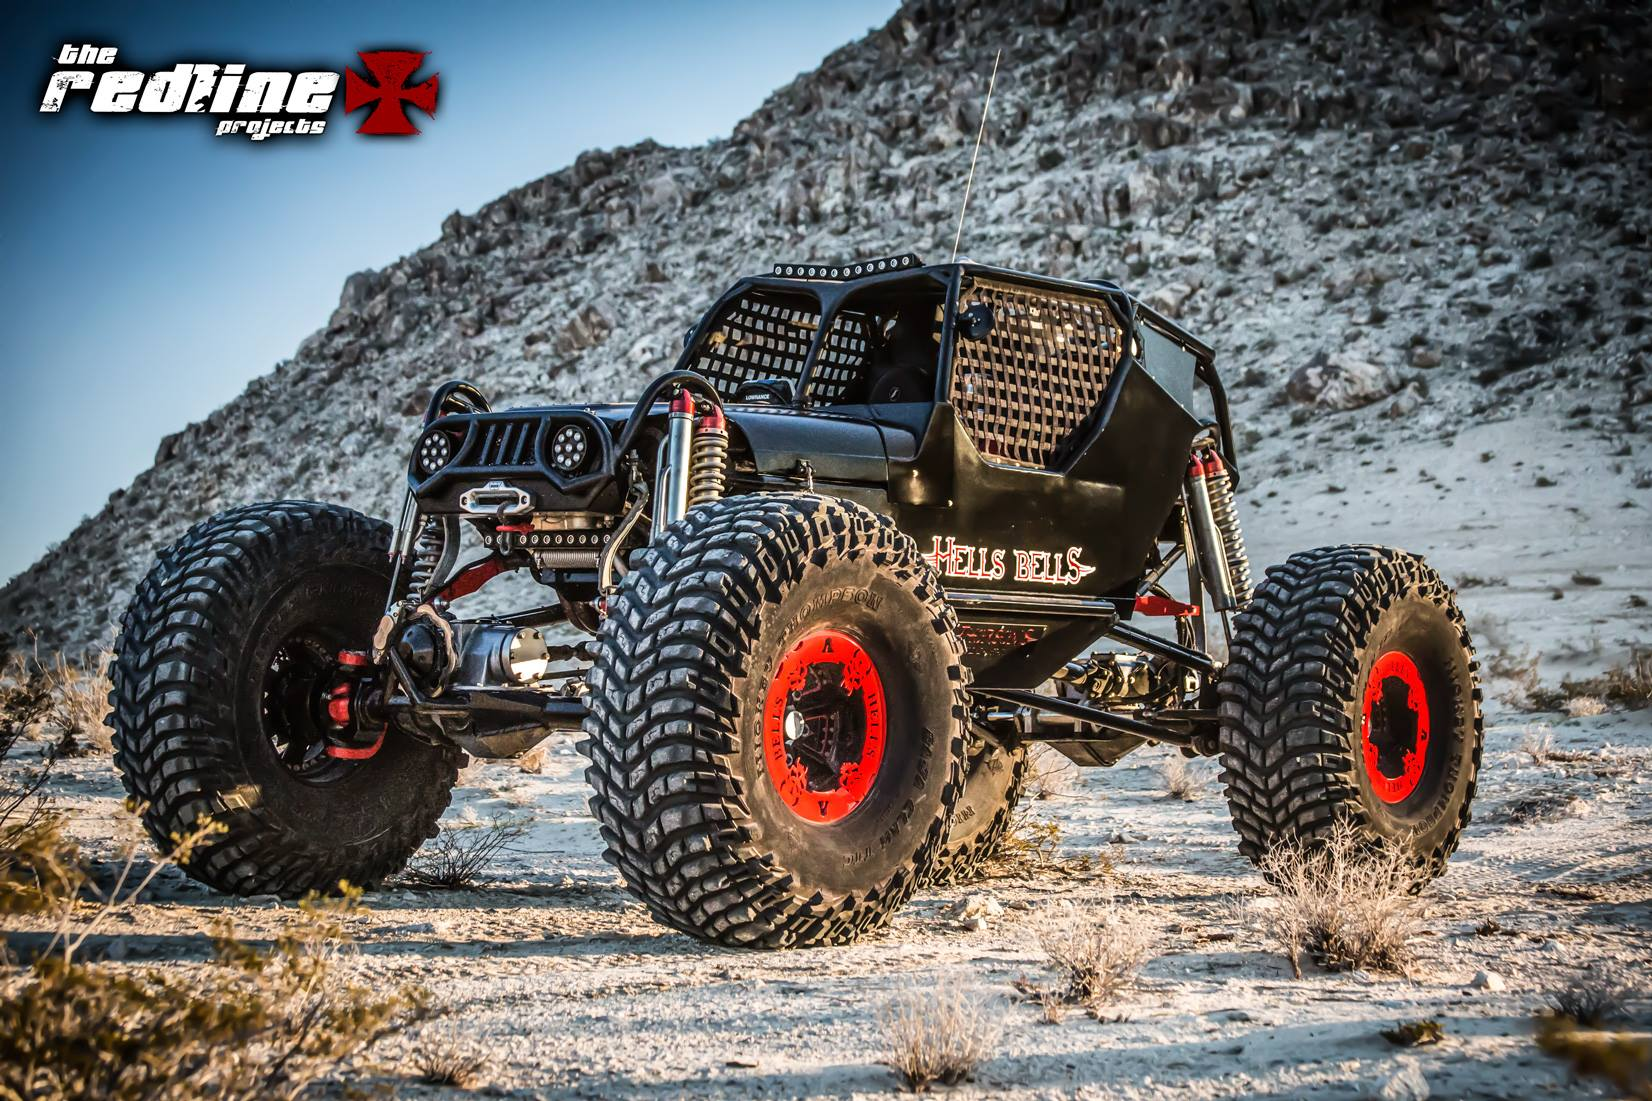 Thorson's Extreme Off-Road